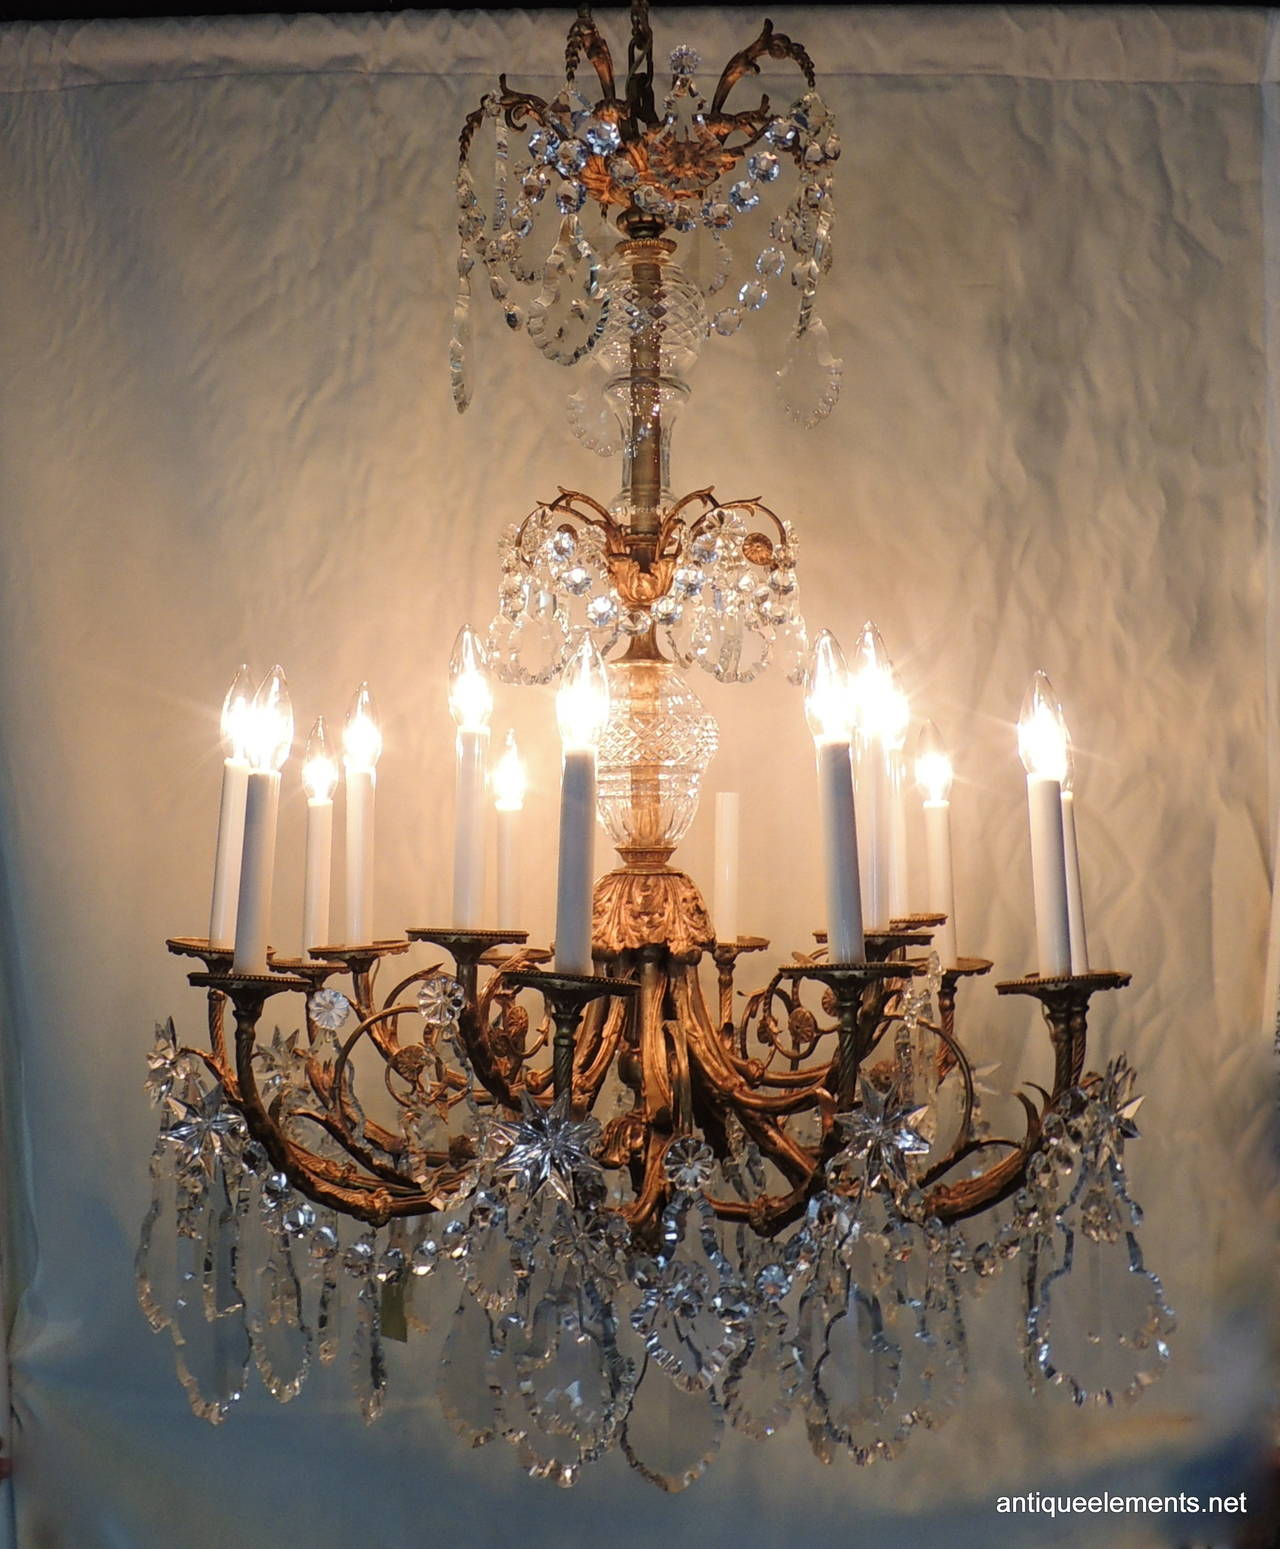 custom customized chandeliers manufacturer hotel selling chandelier lights lamp best crystal large wintersweet lighting